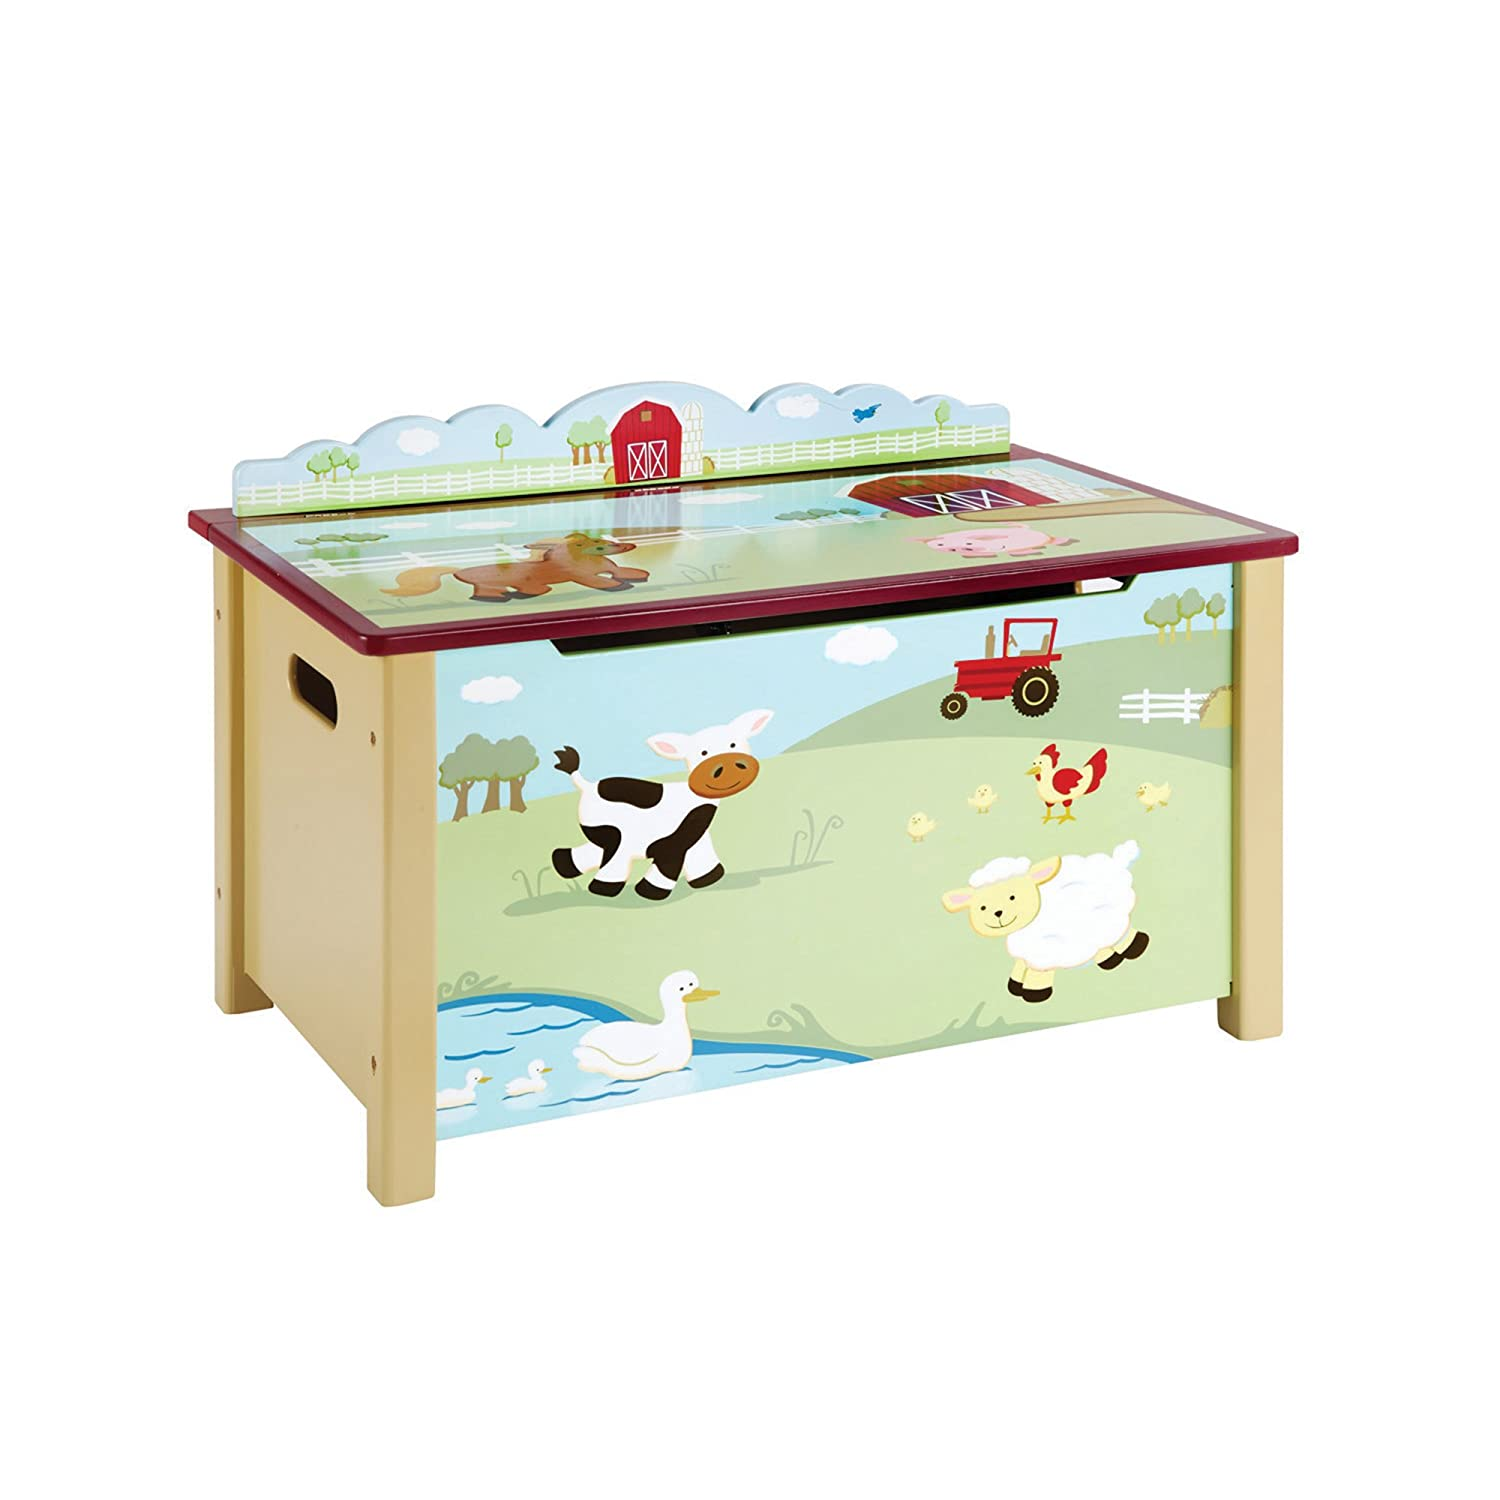 18bebf3cdfe9 Amazon.com  Guidecraft Wood Hand-painted Farm Friends Toy Box Storage Chest  - Kid s Room Furniture  Baby